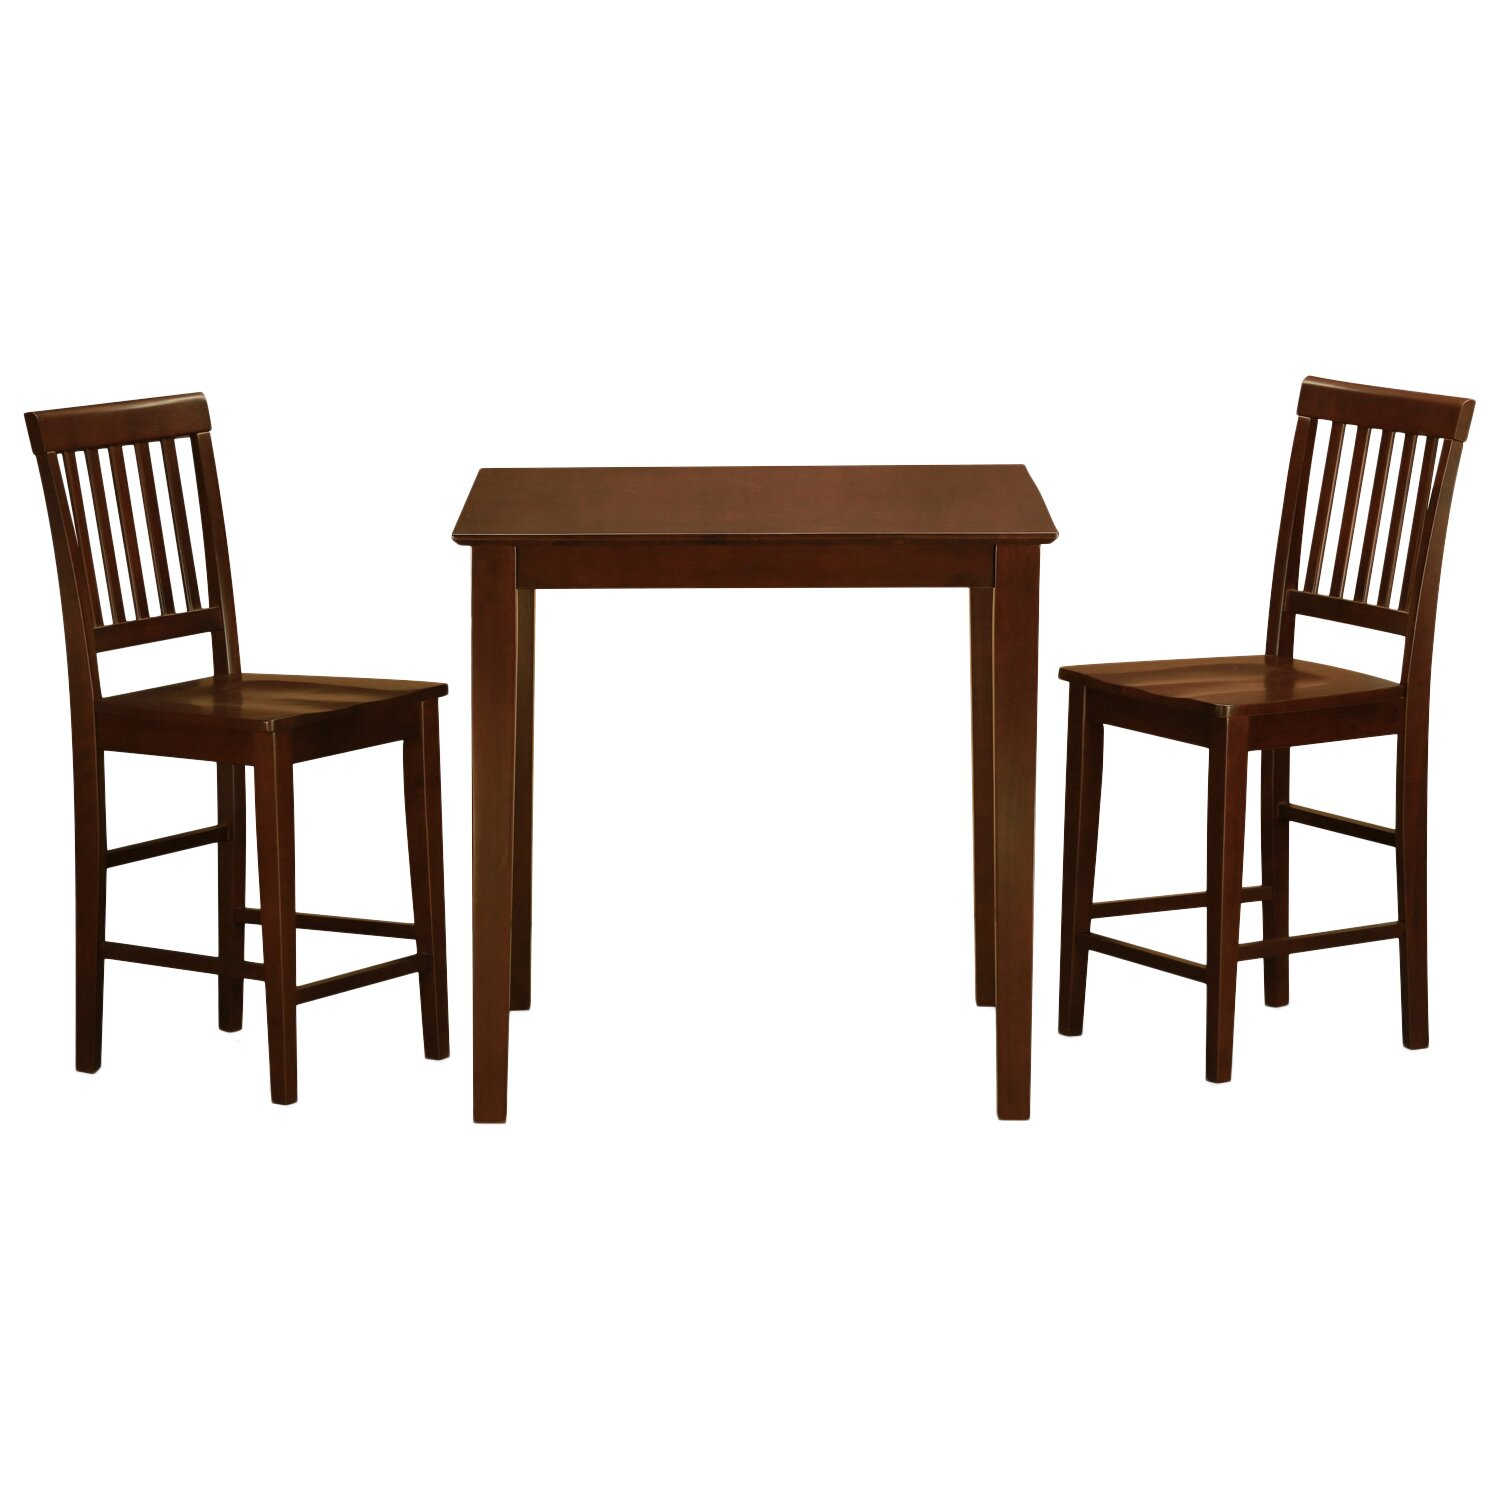 Wooden Importers 3 Piece Dining Set Reviews: Wooden Importers Vernon 3 Piece Counter Height Dining Set